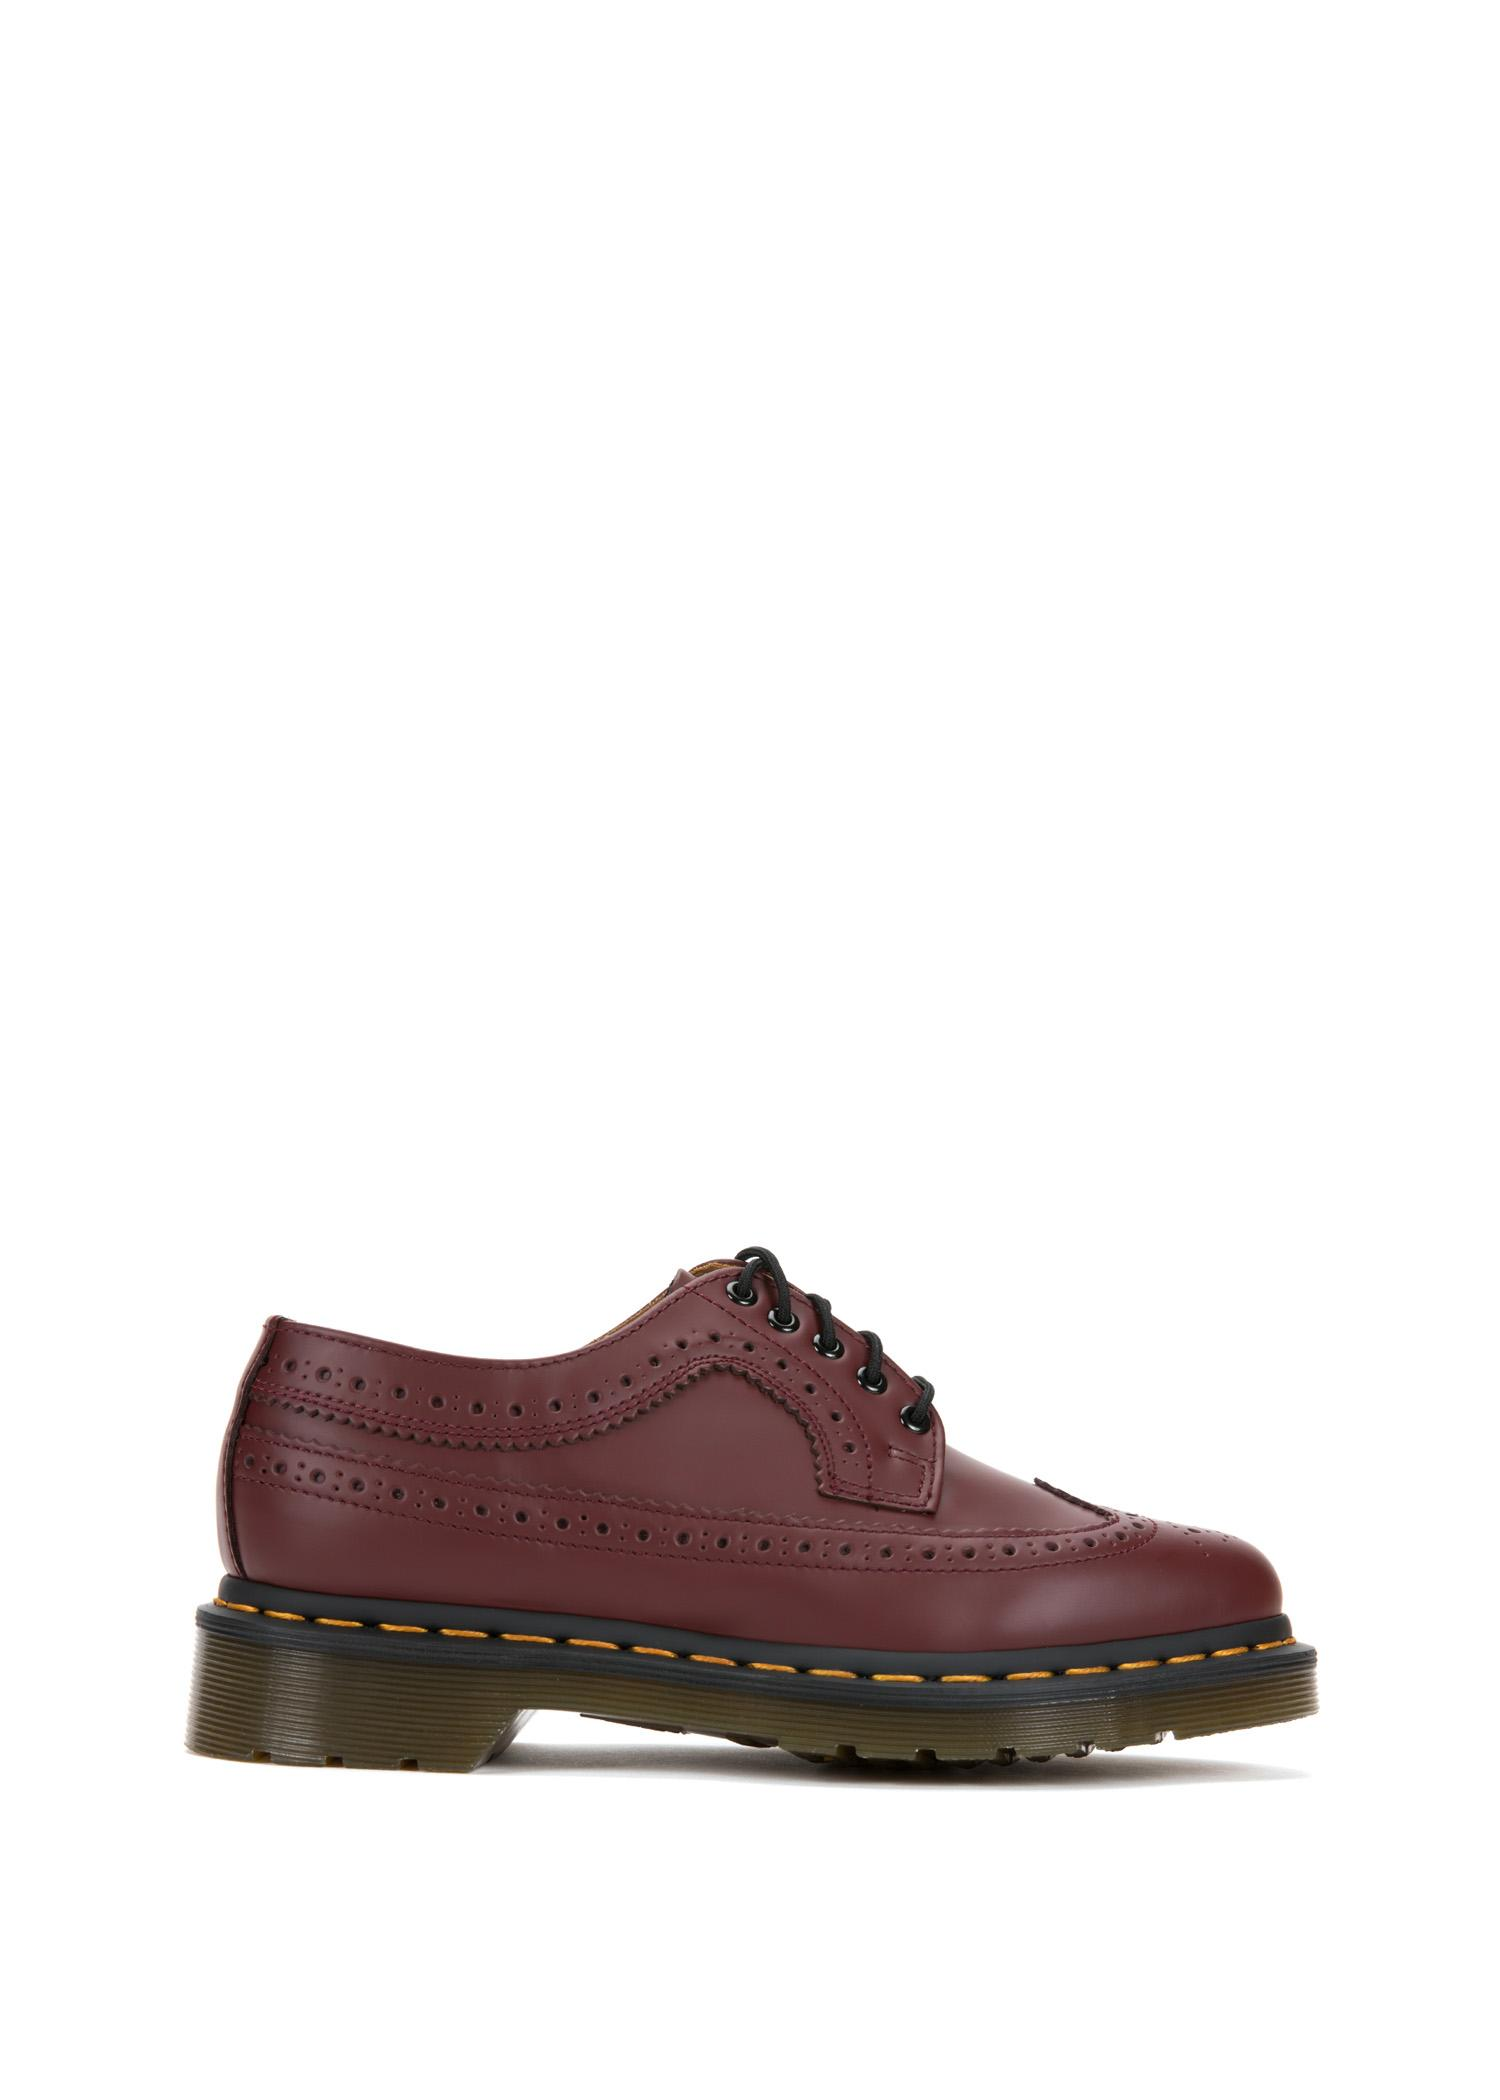 76f74d021dd9 Dr. Martens 3989 Yellow Stitch In Cherry Red | ModeSens